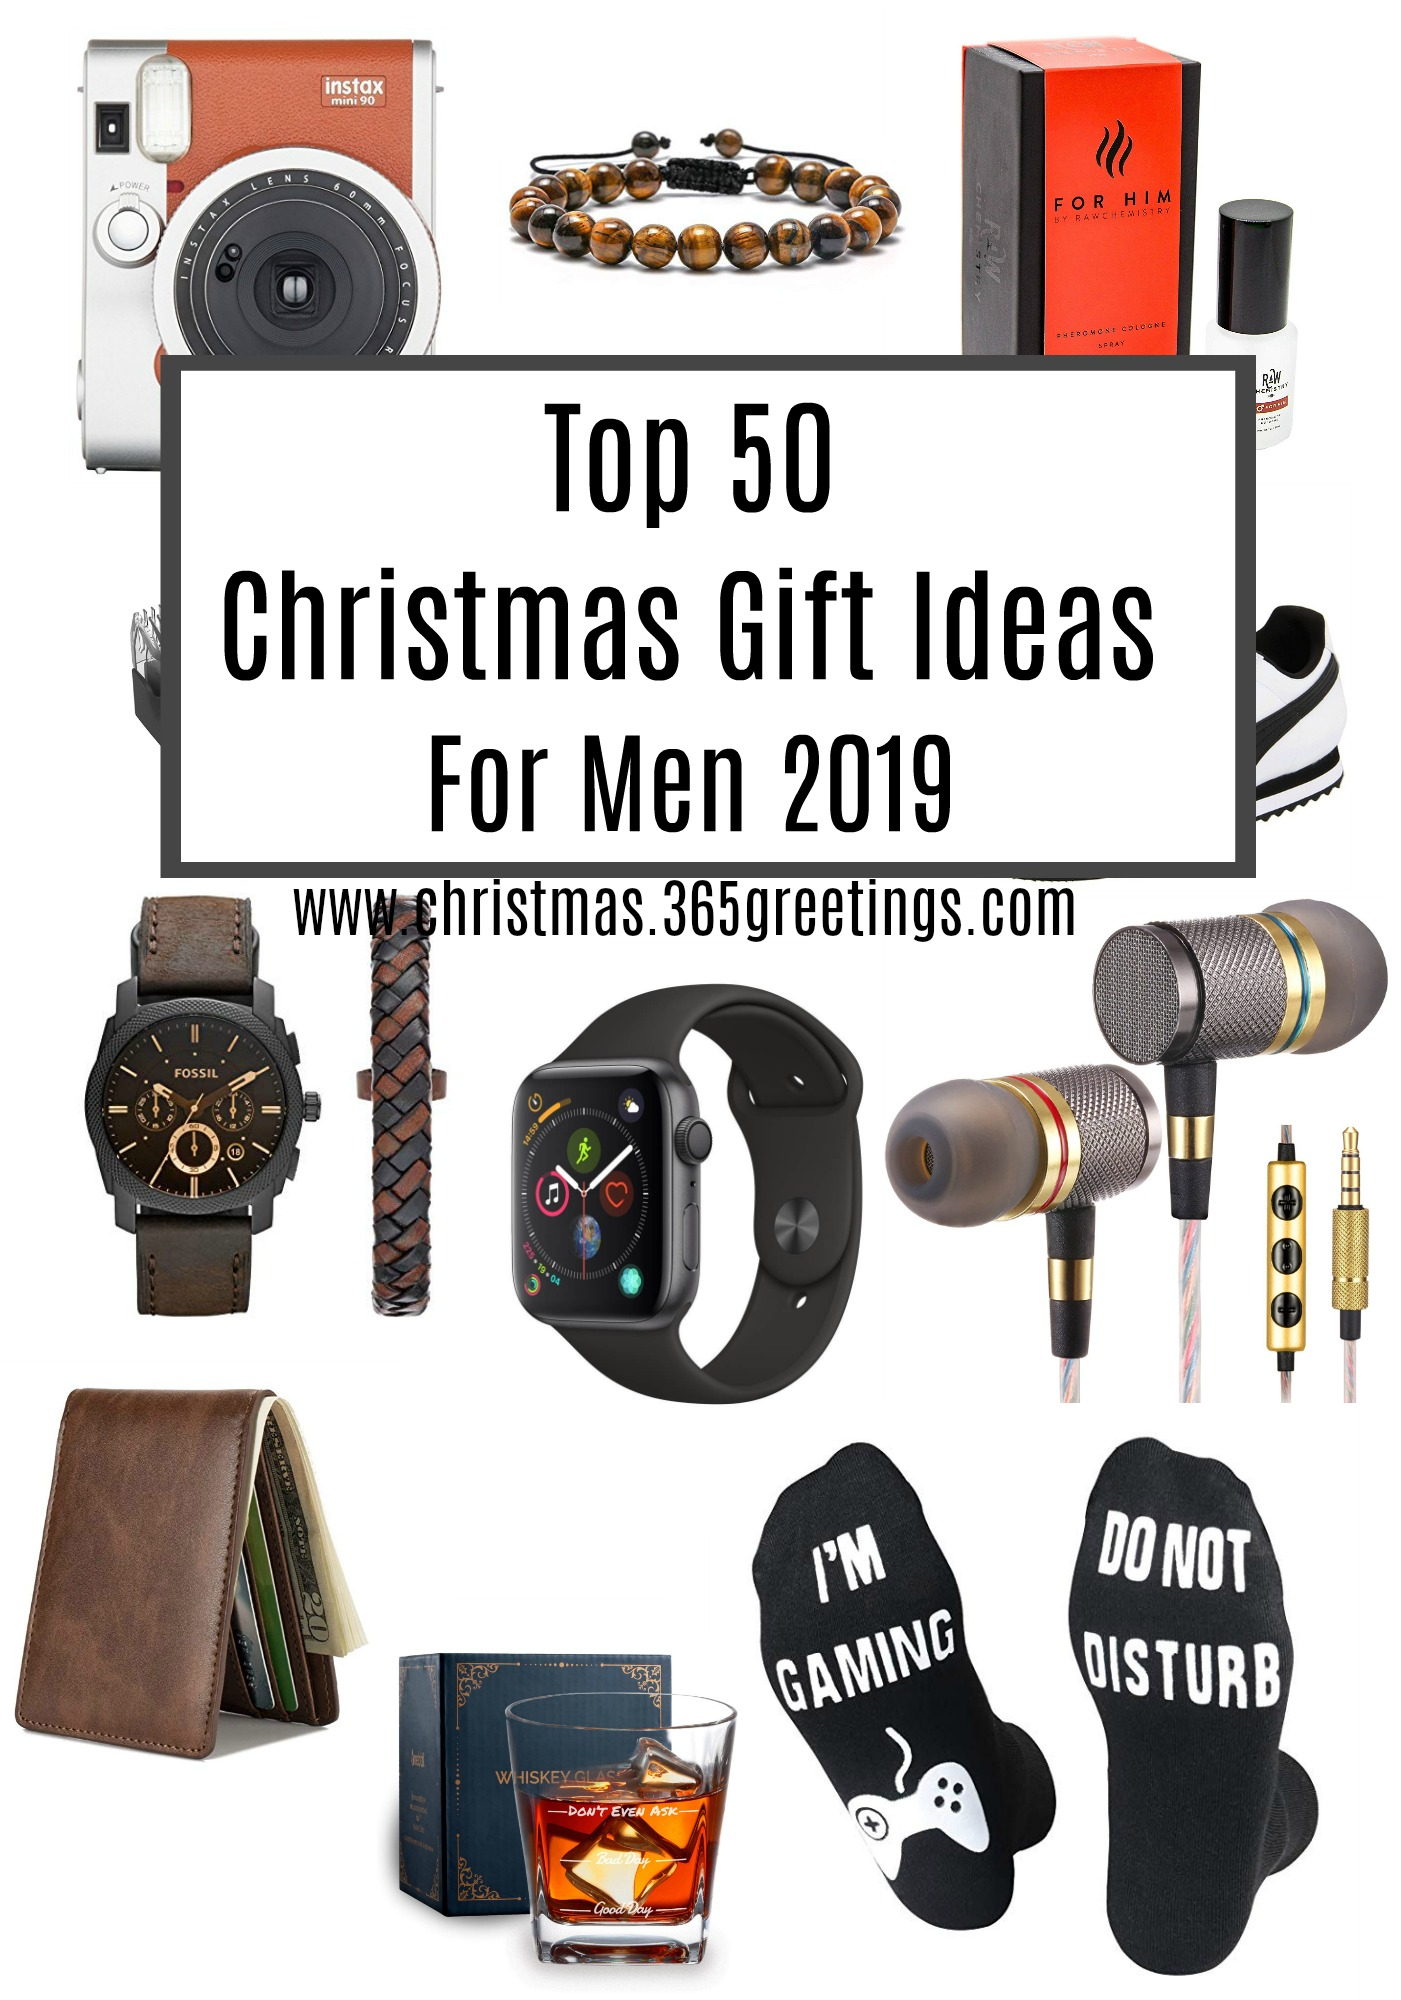 Christmas Gifts For 2020 Top Christmas Gifts for Men 2020   Christmas Celebration   All